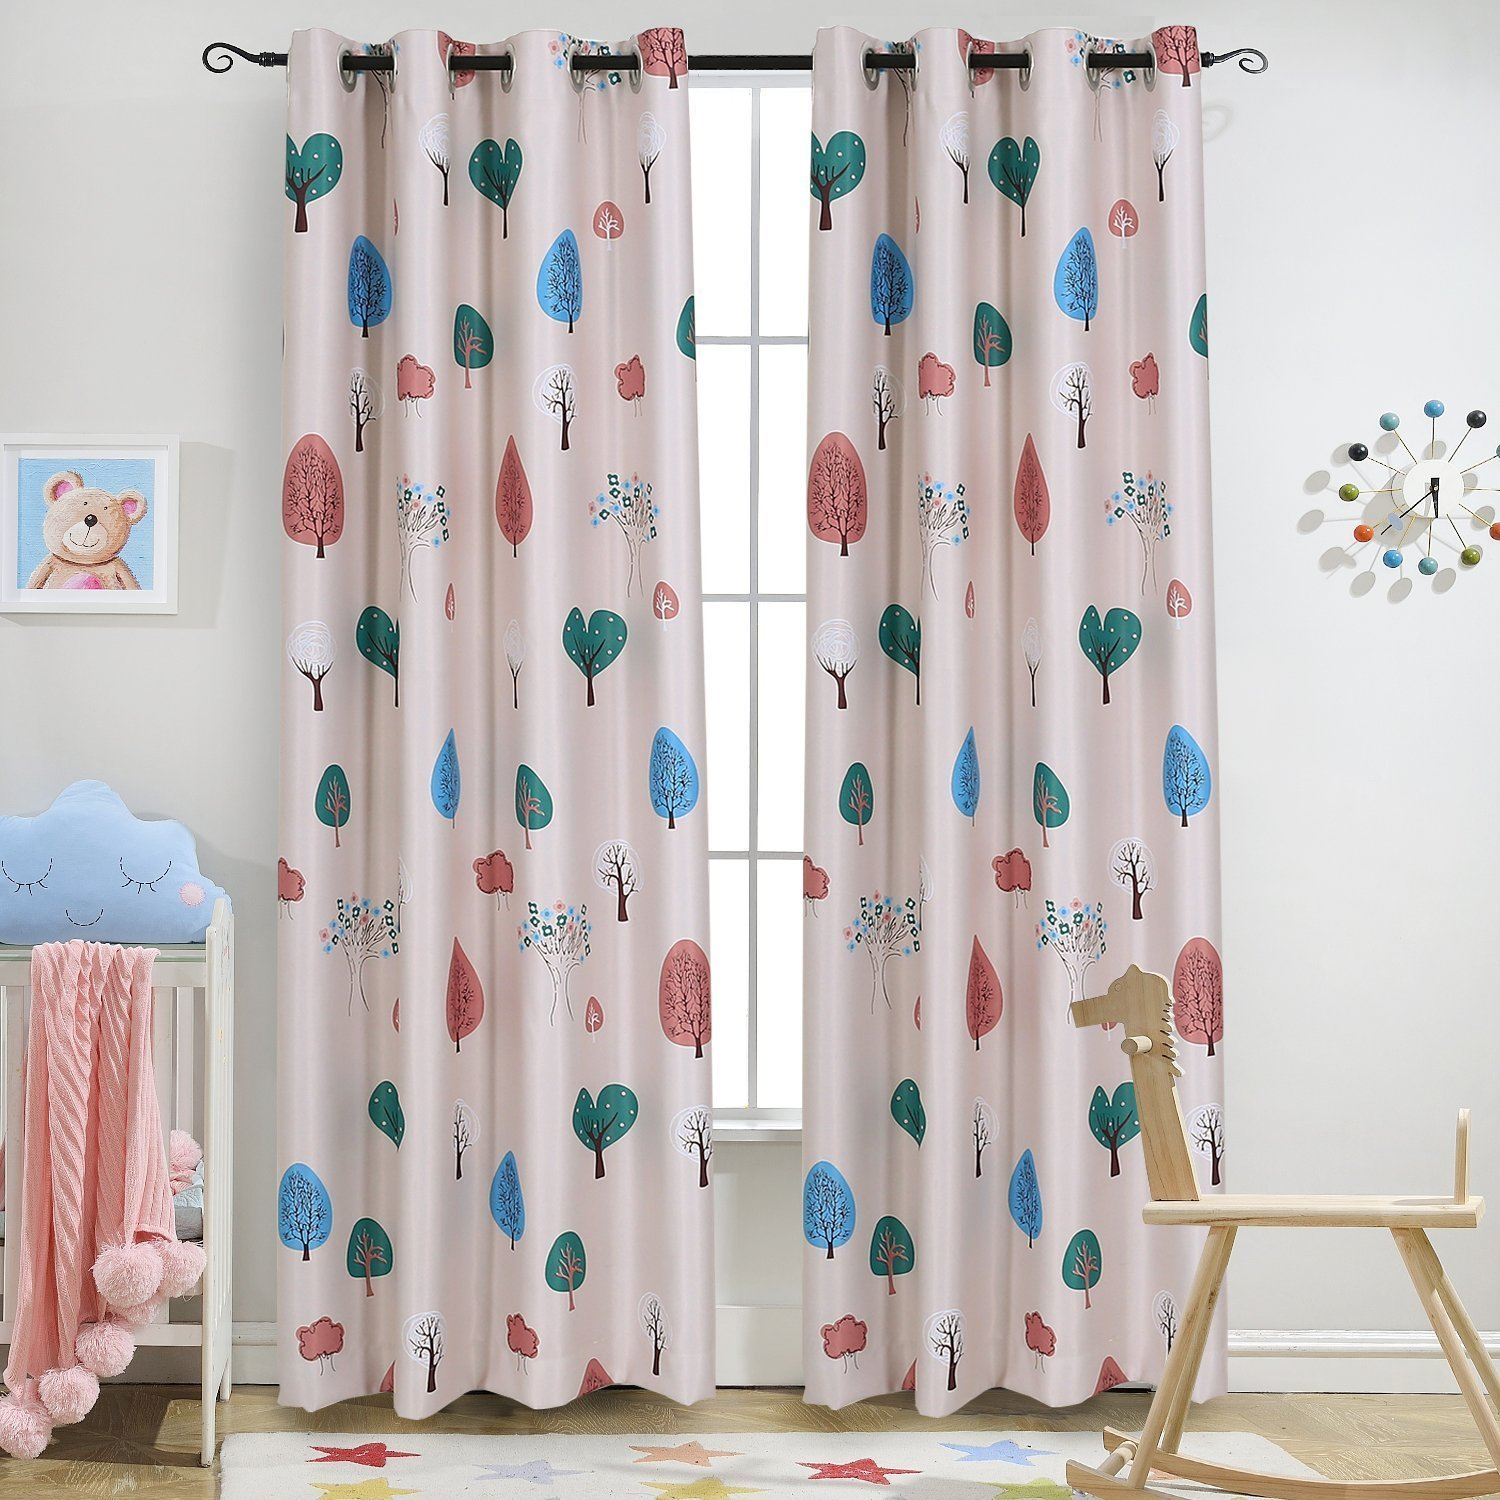 Best Kids Room Curtain Ideas For Kids Room Kids Curtains Boys With Pictures